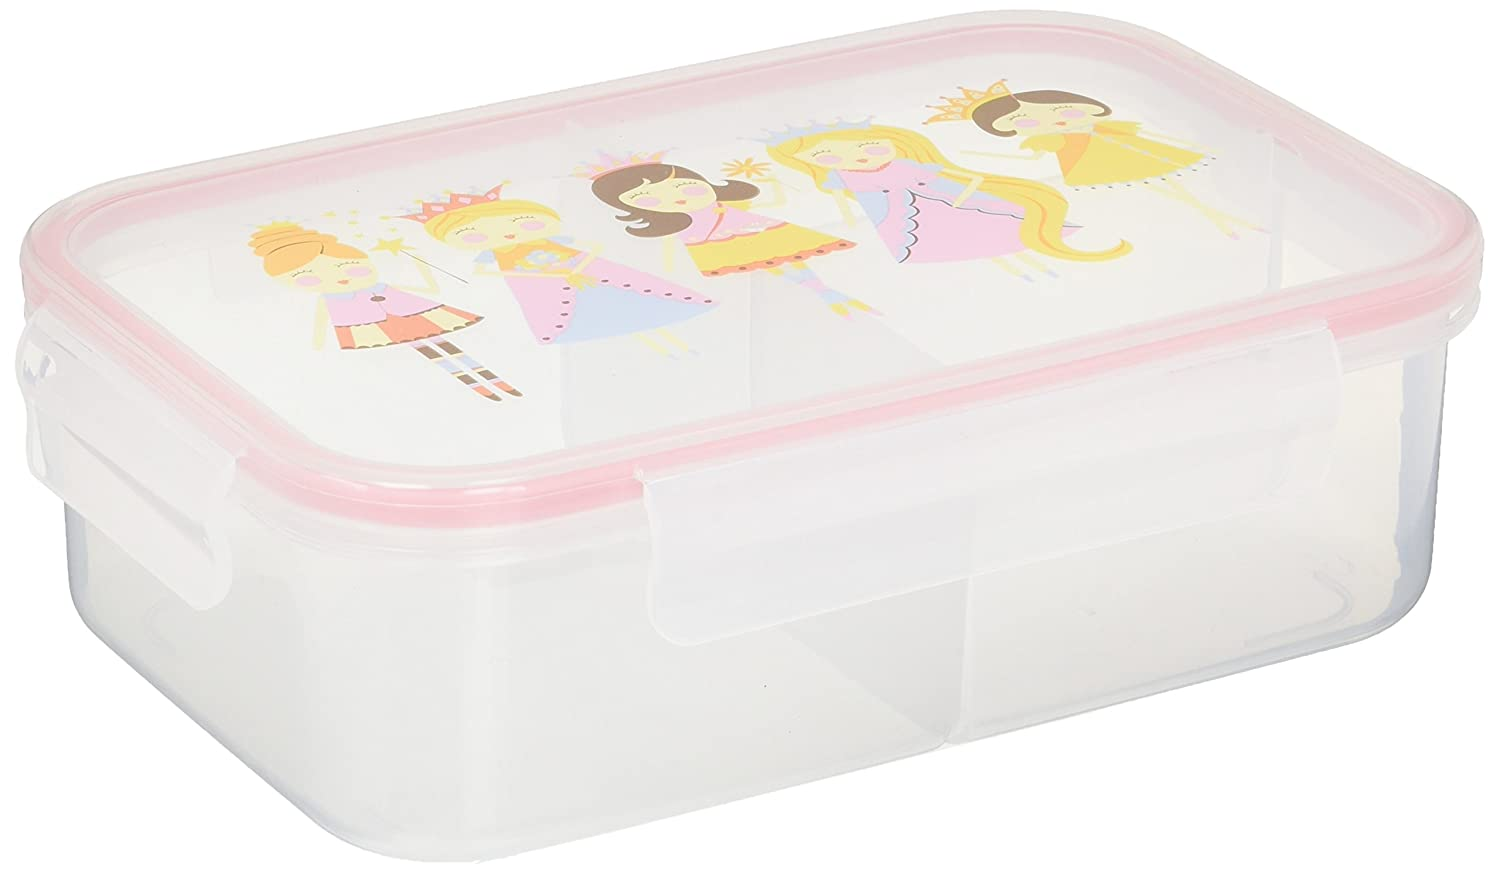 Sugarbooger Good Lunch Bento Box, Princess A1095